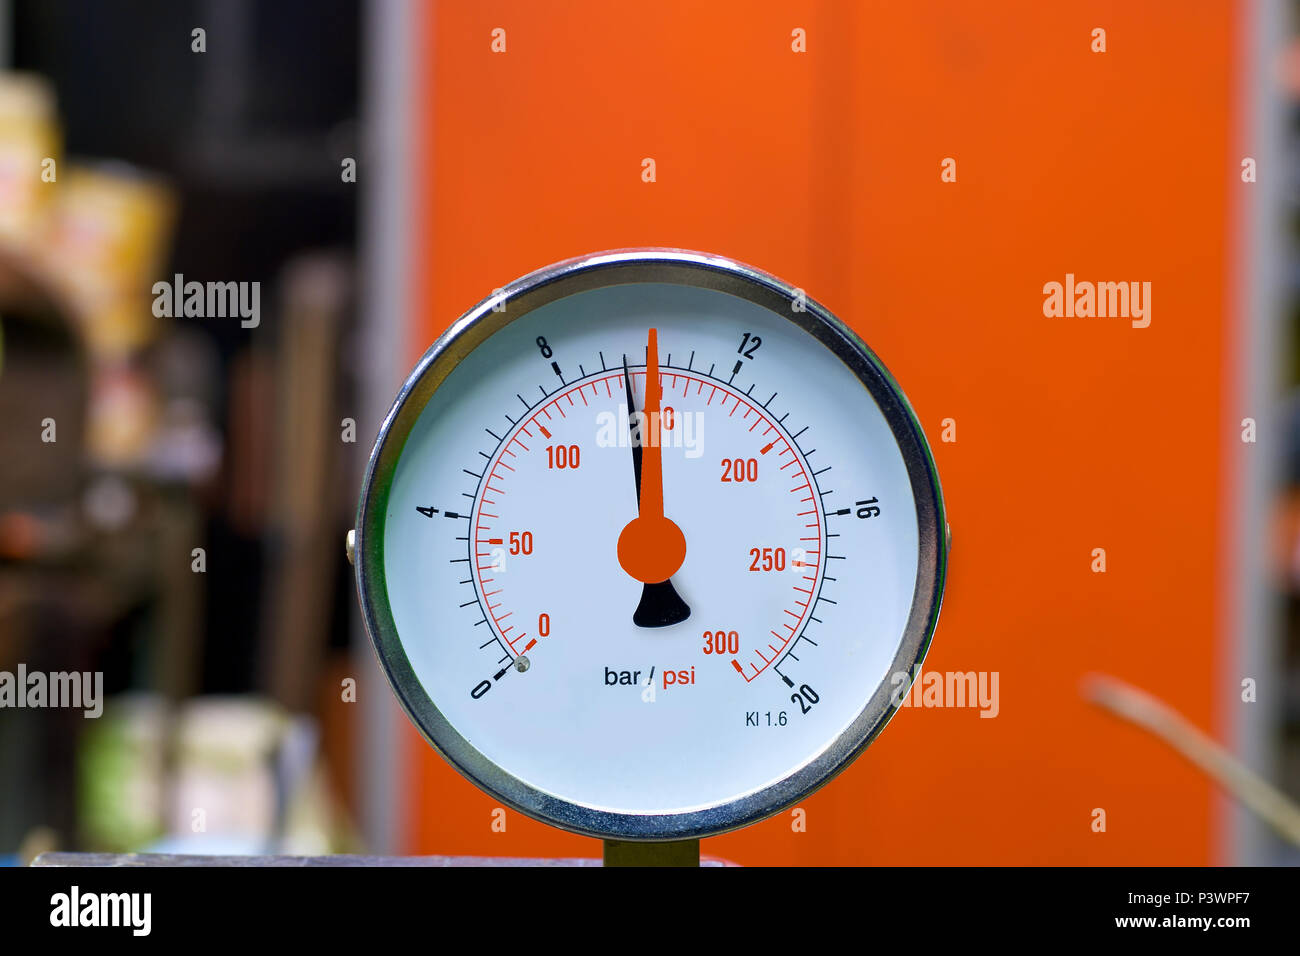 A 0 - 300 psi pressure gauge attached to an industrial boiler. Stock Photo